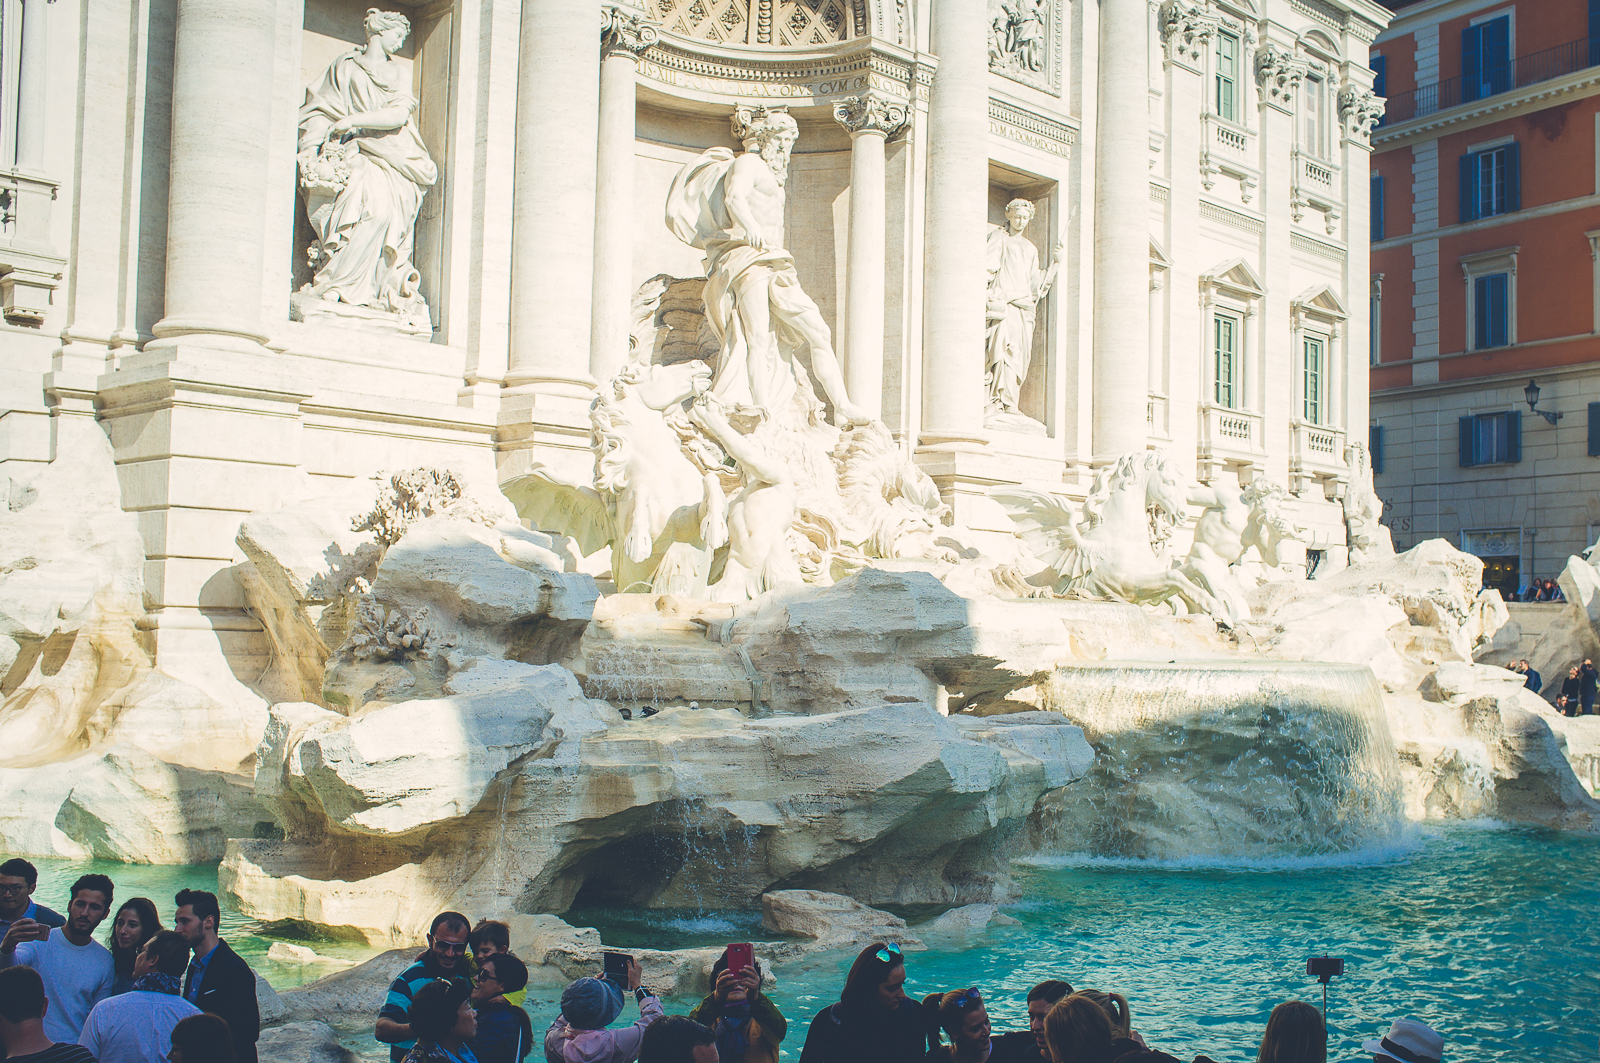 By the Trevi Fountain